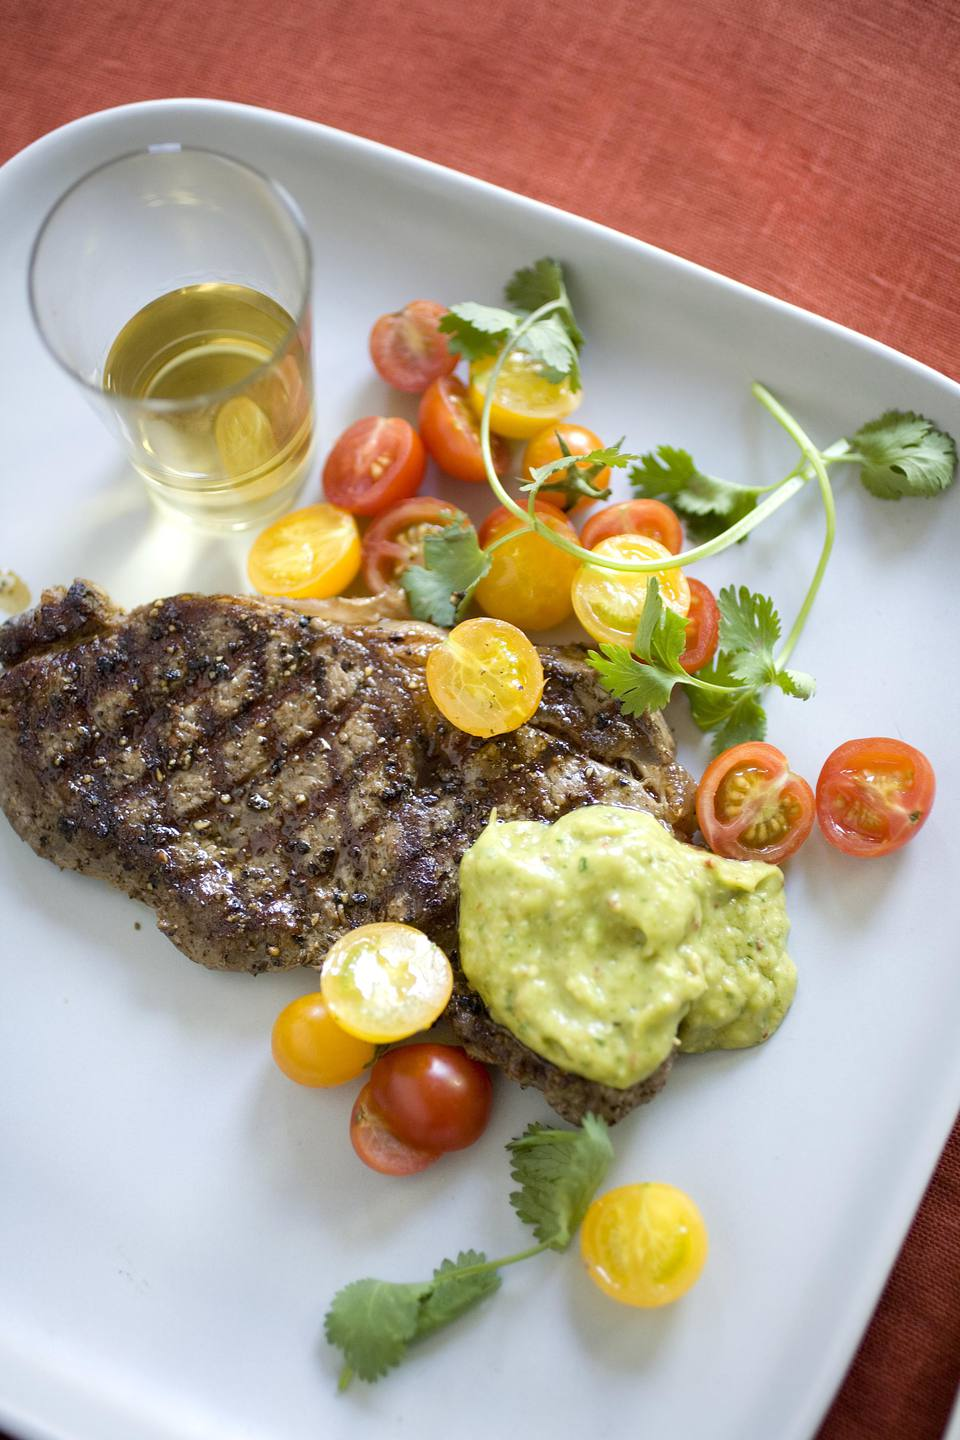 Avocado Steak Topper